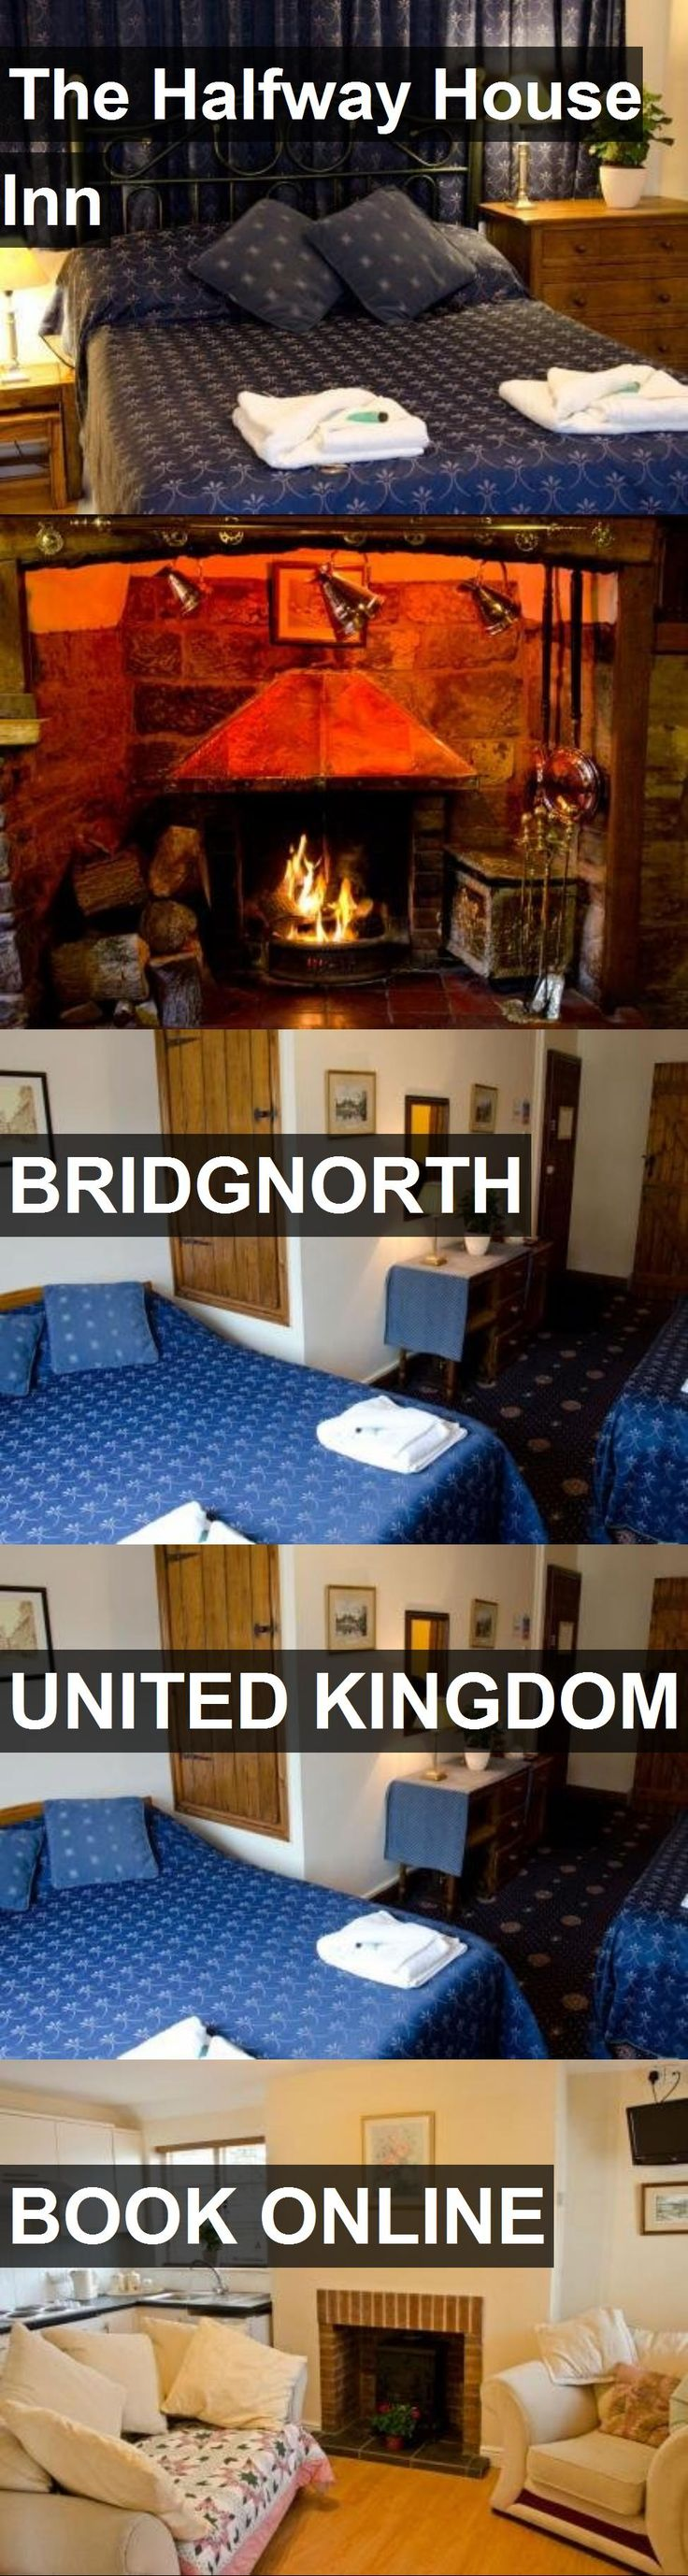 Hotel The Halfway House Inn in Bridgnorth, United Kingdom. For more information, photos, reviews and best prices please follow the link. #UnitedKingdom #Bridgnorth #travel #vacation #hotel